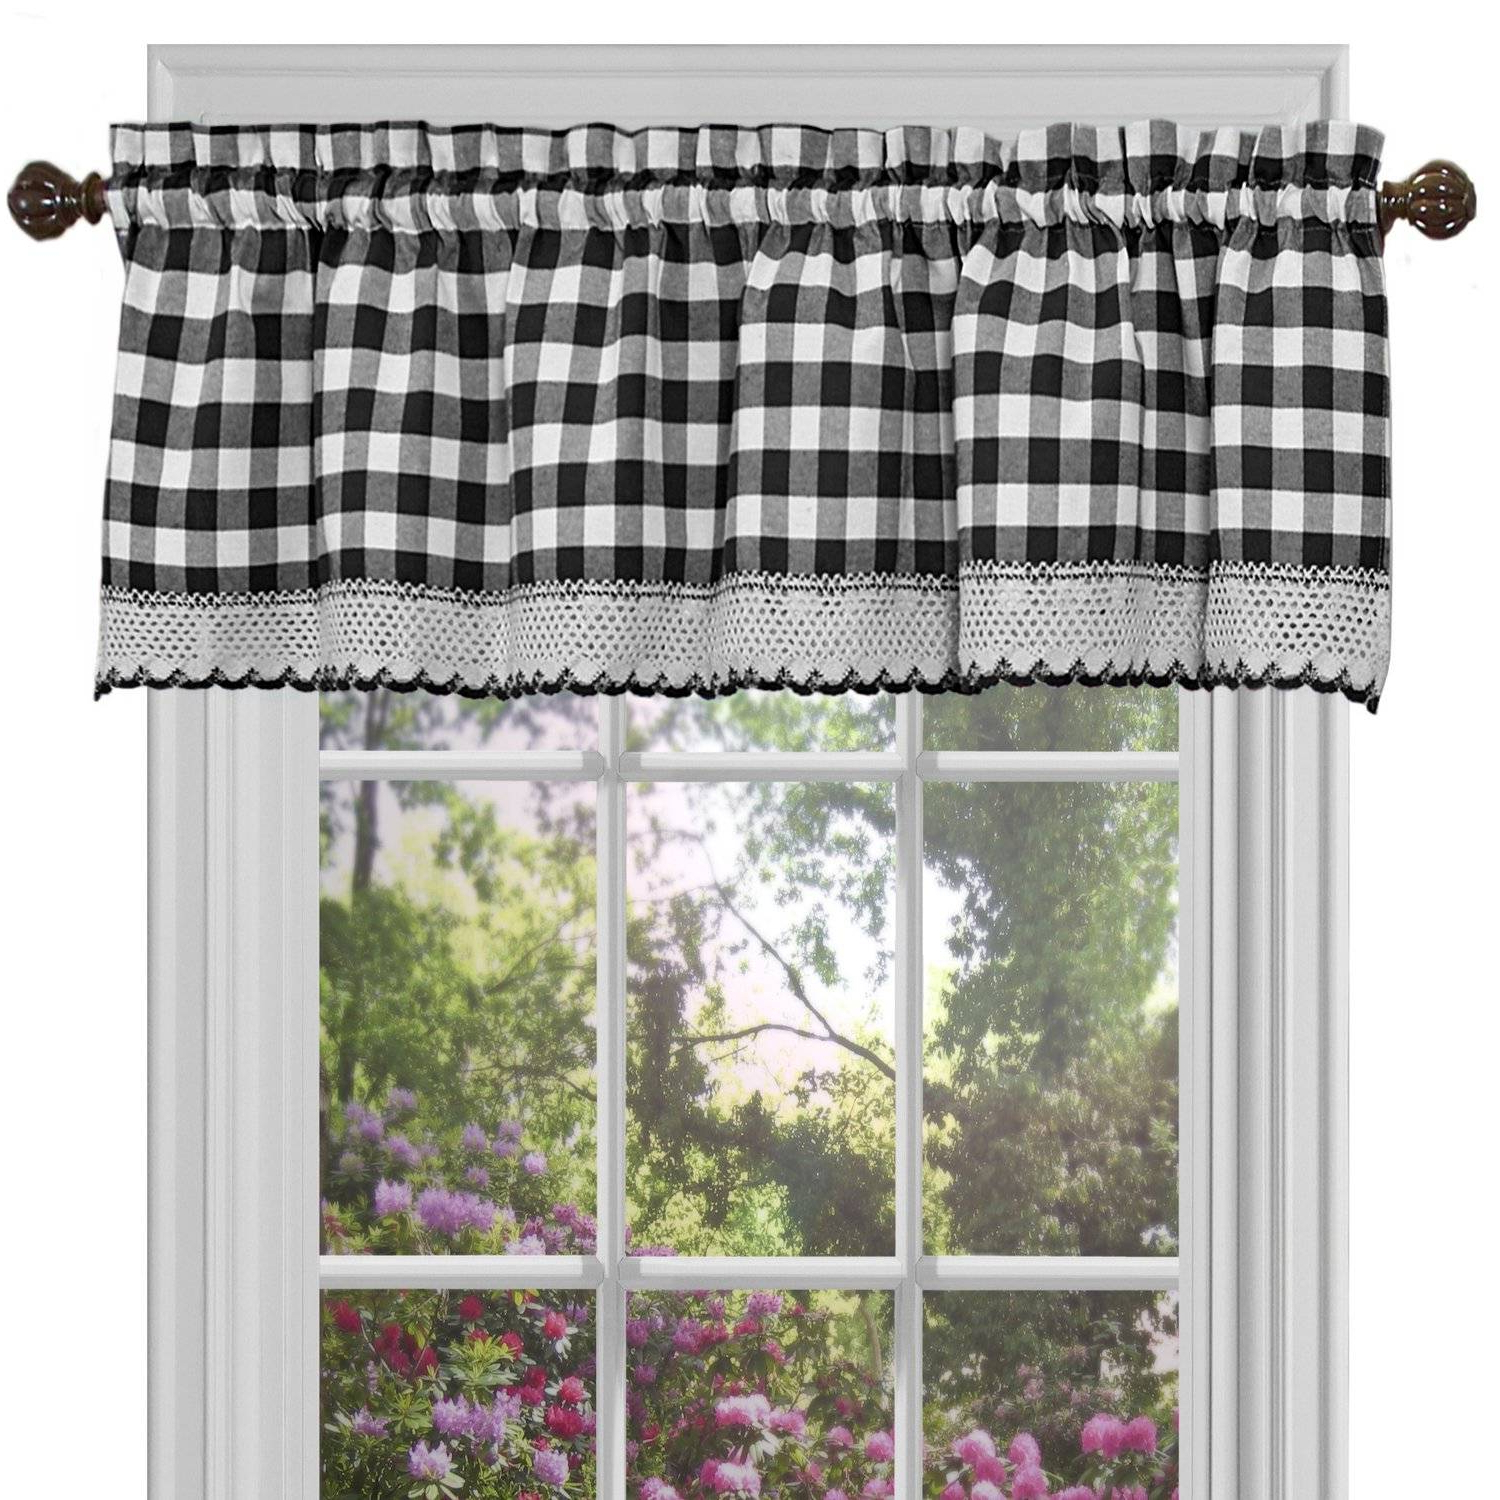 Classic Black And White Curtain Tiers Inside 2021 Alluring Black And White Checkered Kitchen Valance Valances (View 5 of 20)